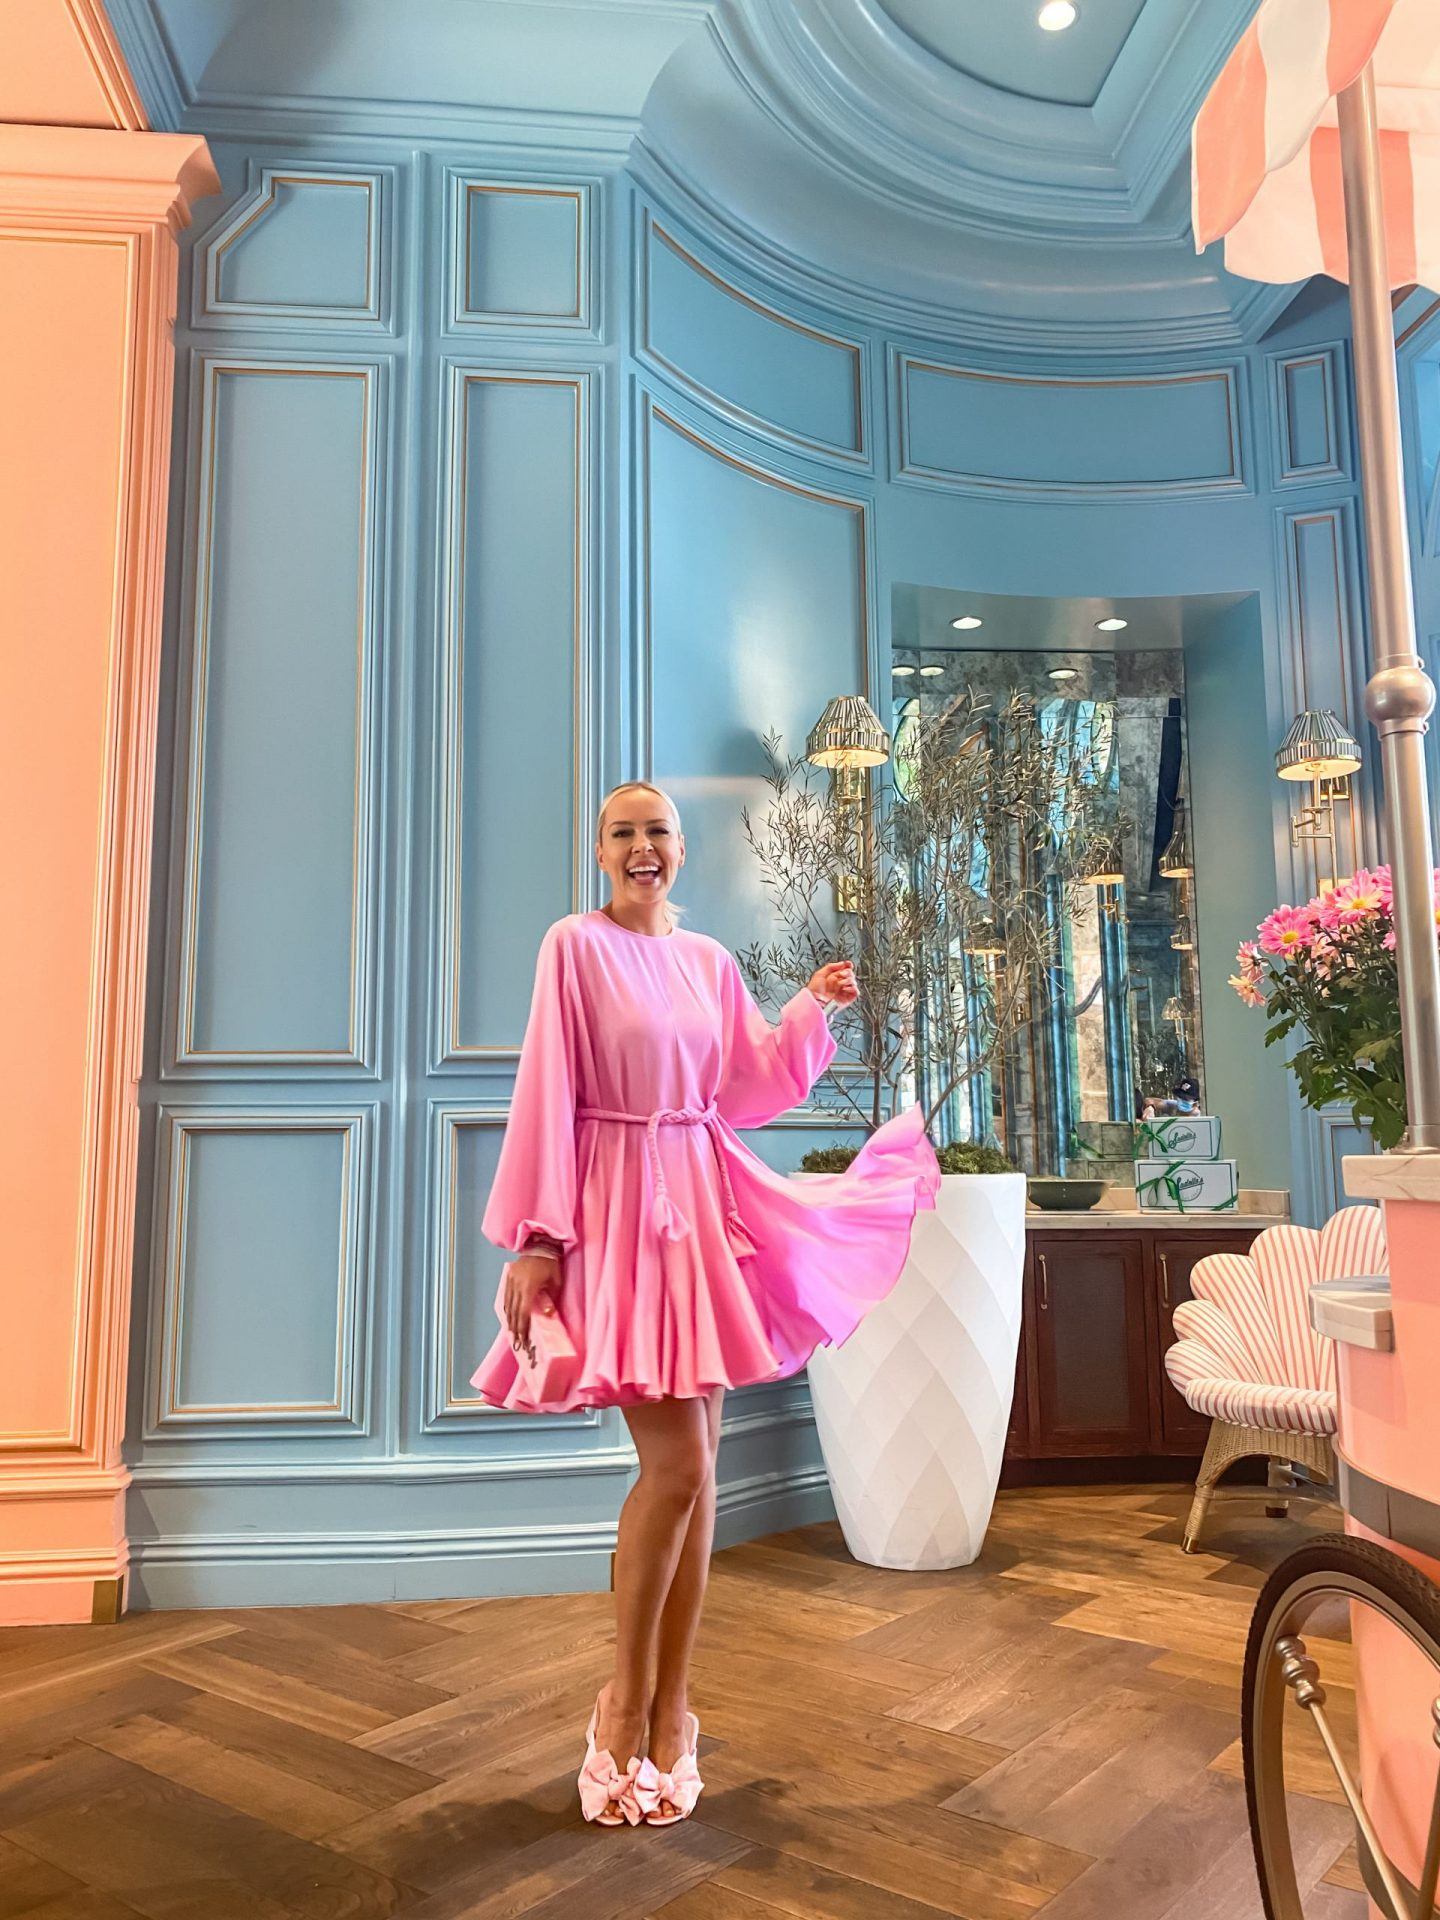 Travel style inspiration at Sadelle's in Bellagio Hotel Las Vegas, featuring Victoria Emerson sale accessories. By Lombard & Fifth Veronica Levy. Pastel décor.